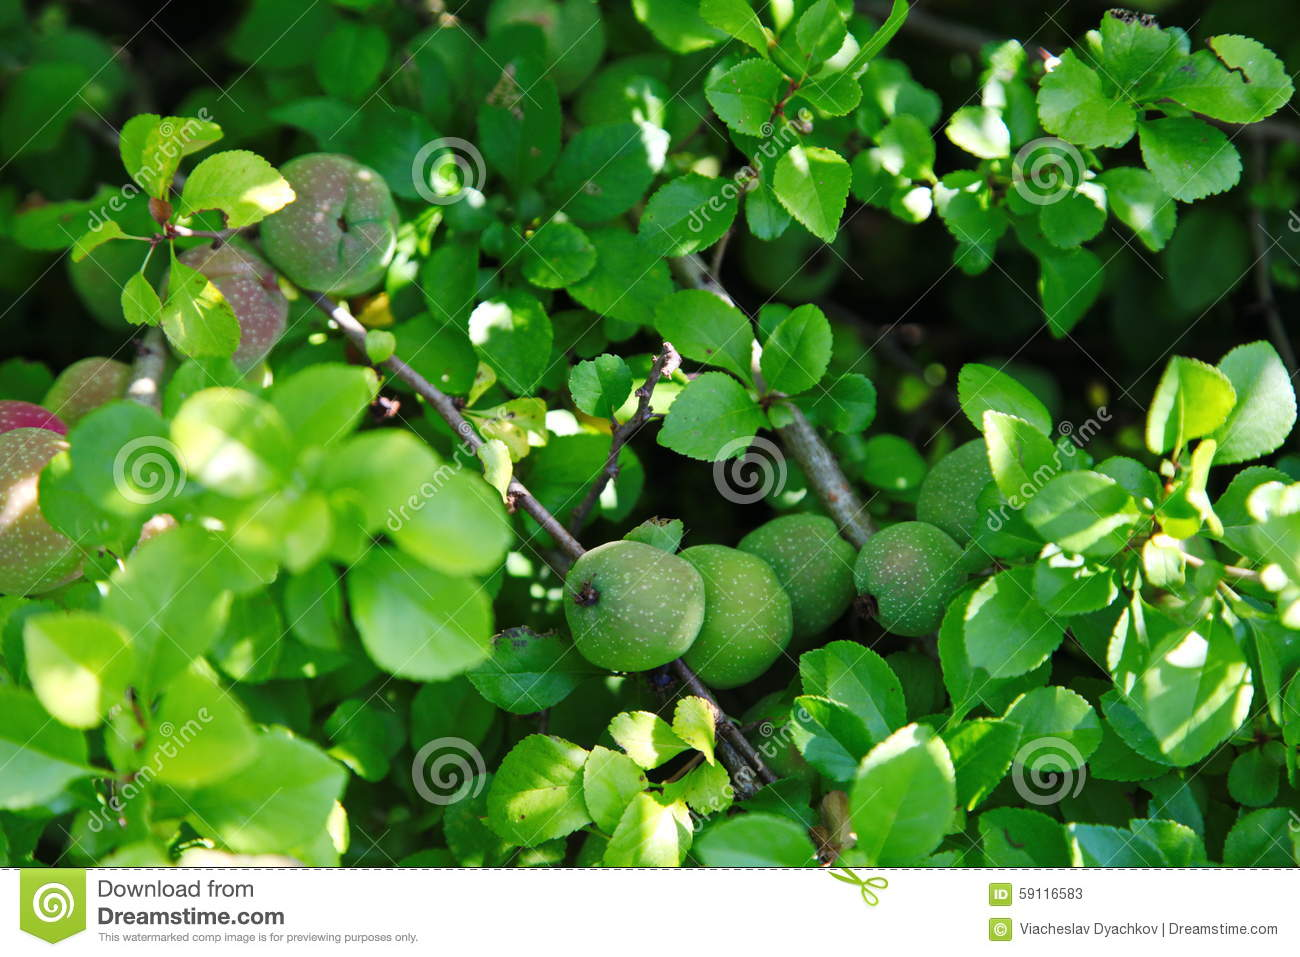 Green Fruits Of Japanese Quince Garland On Branches Of A